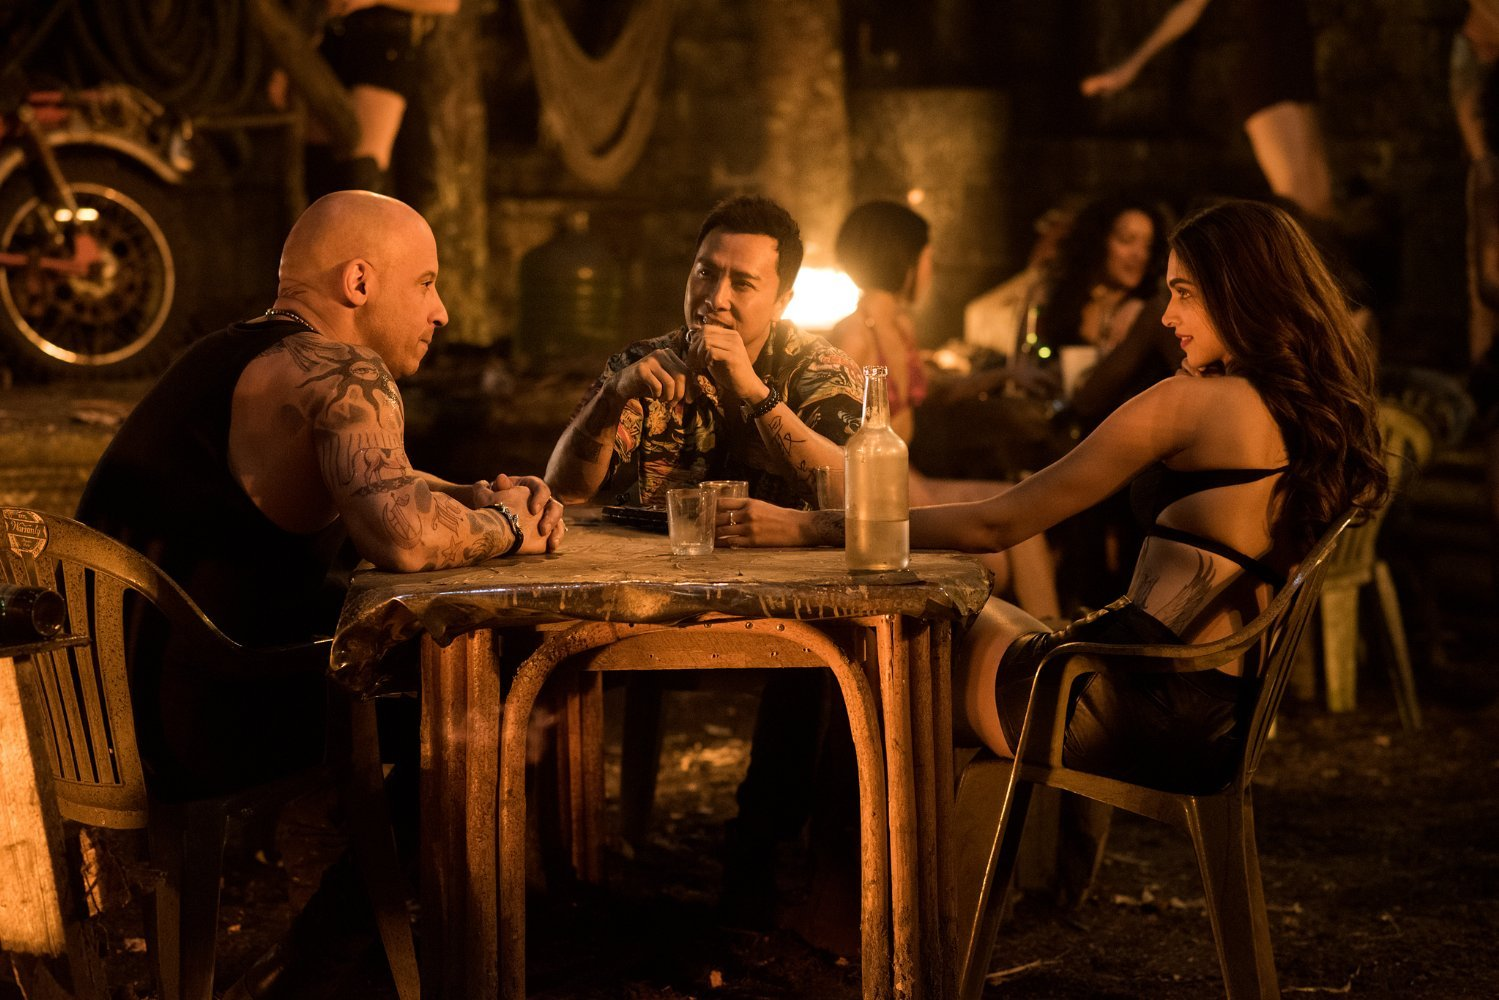 Xxx: The Return Of Xander Cage (Movie) Review 1